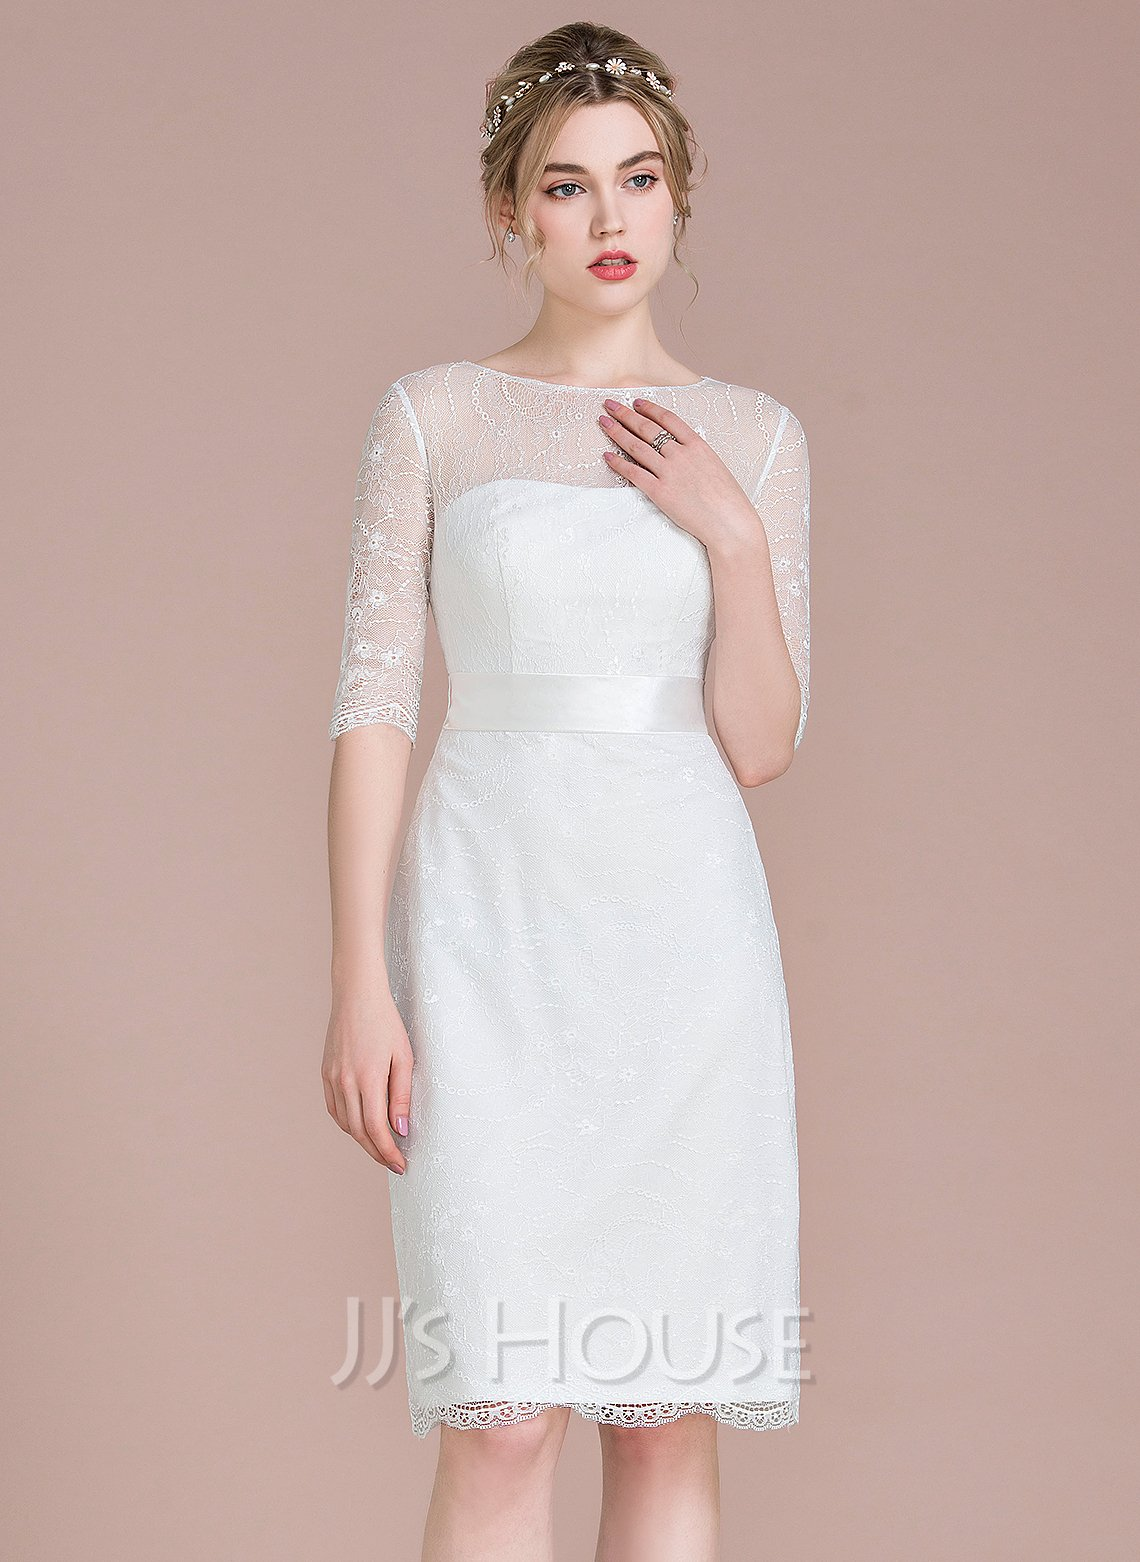 Sheath/Column Illusion Knee-Length Lace Wedding Dress With Bow(s)